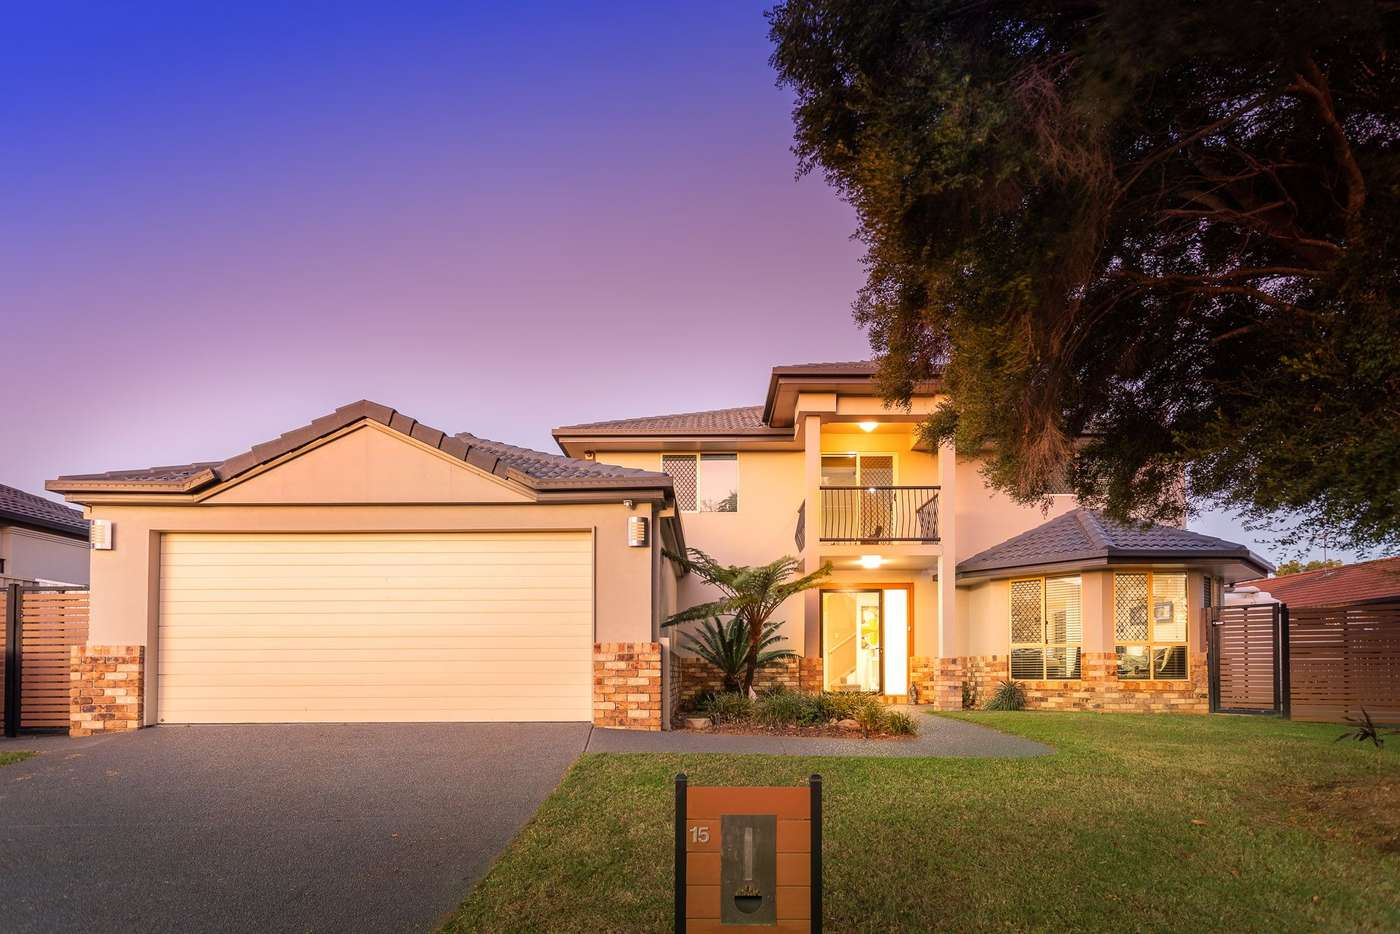 Main view of Homely house listing, 15 Stiller Drive, Kuraby QLD 4112